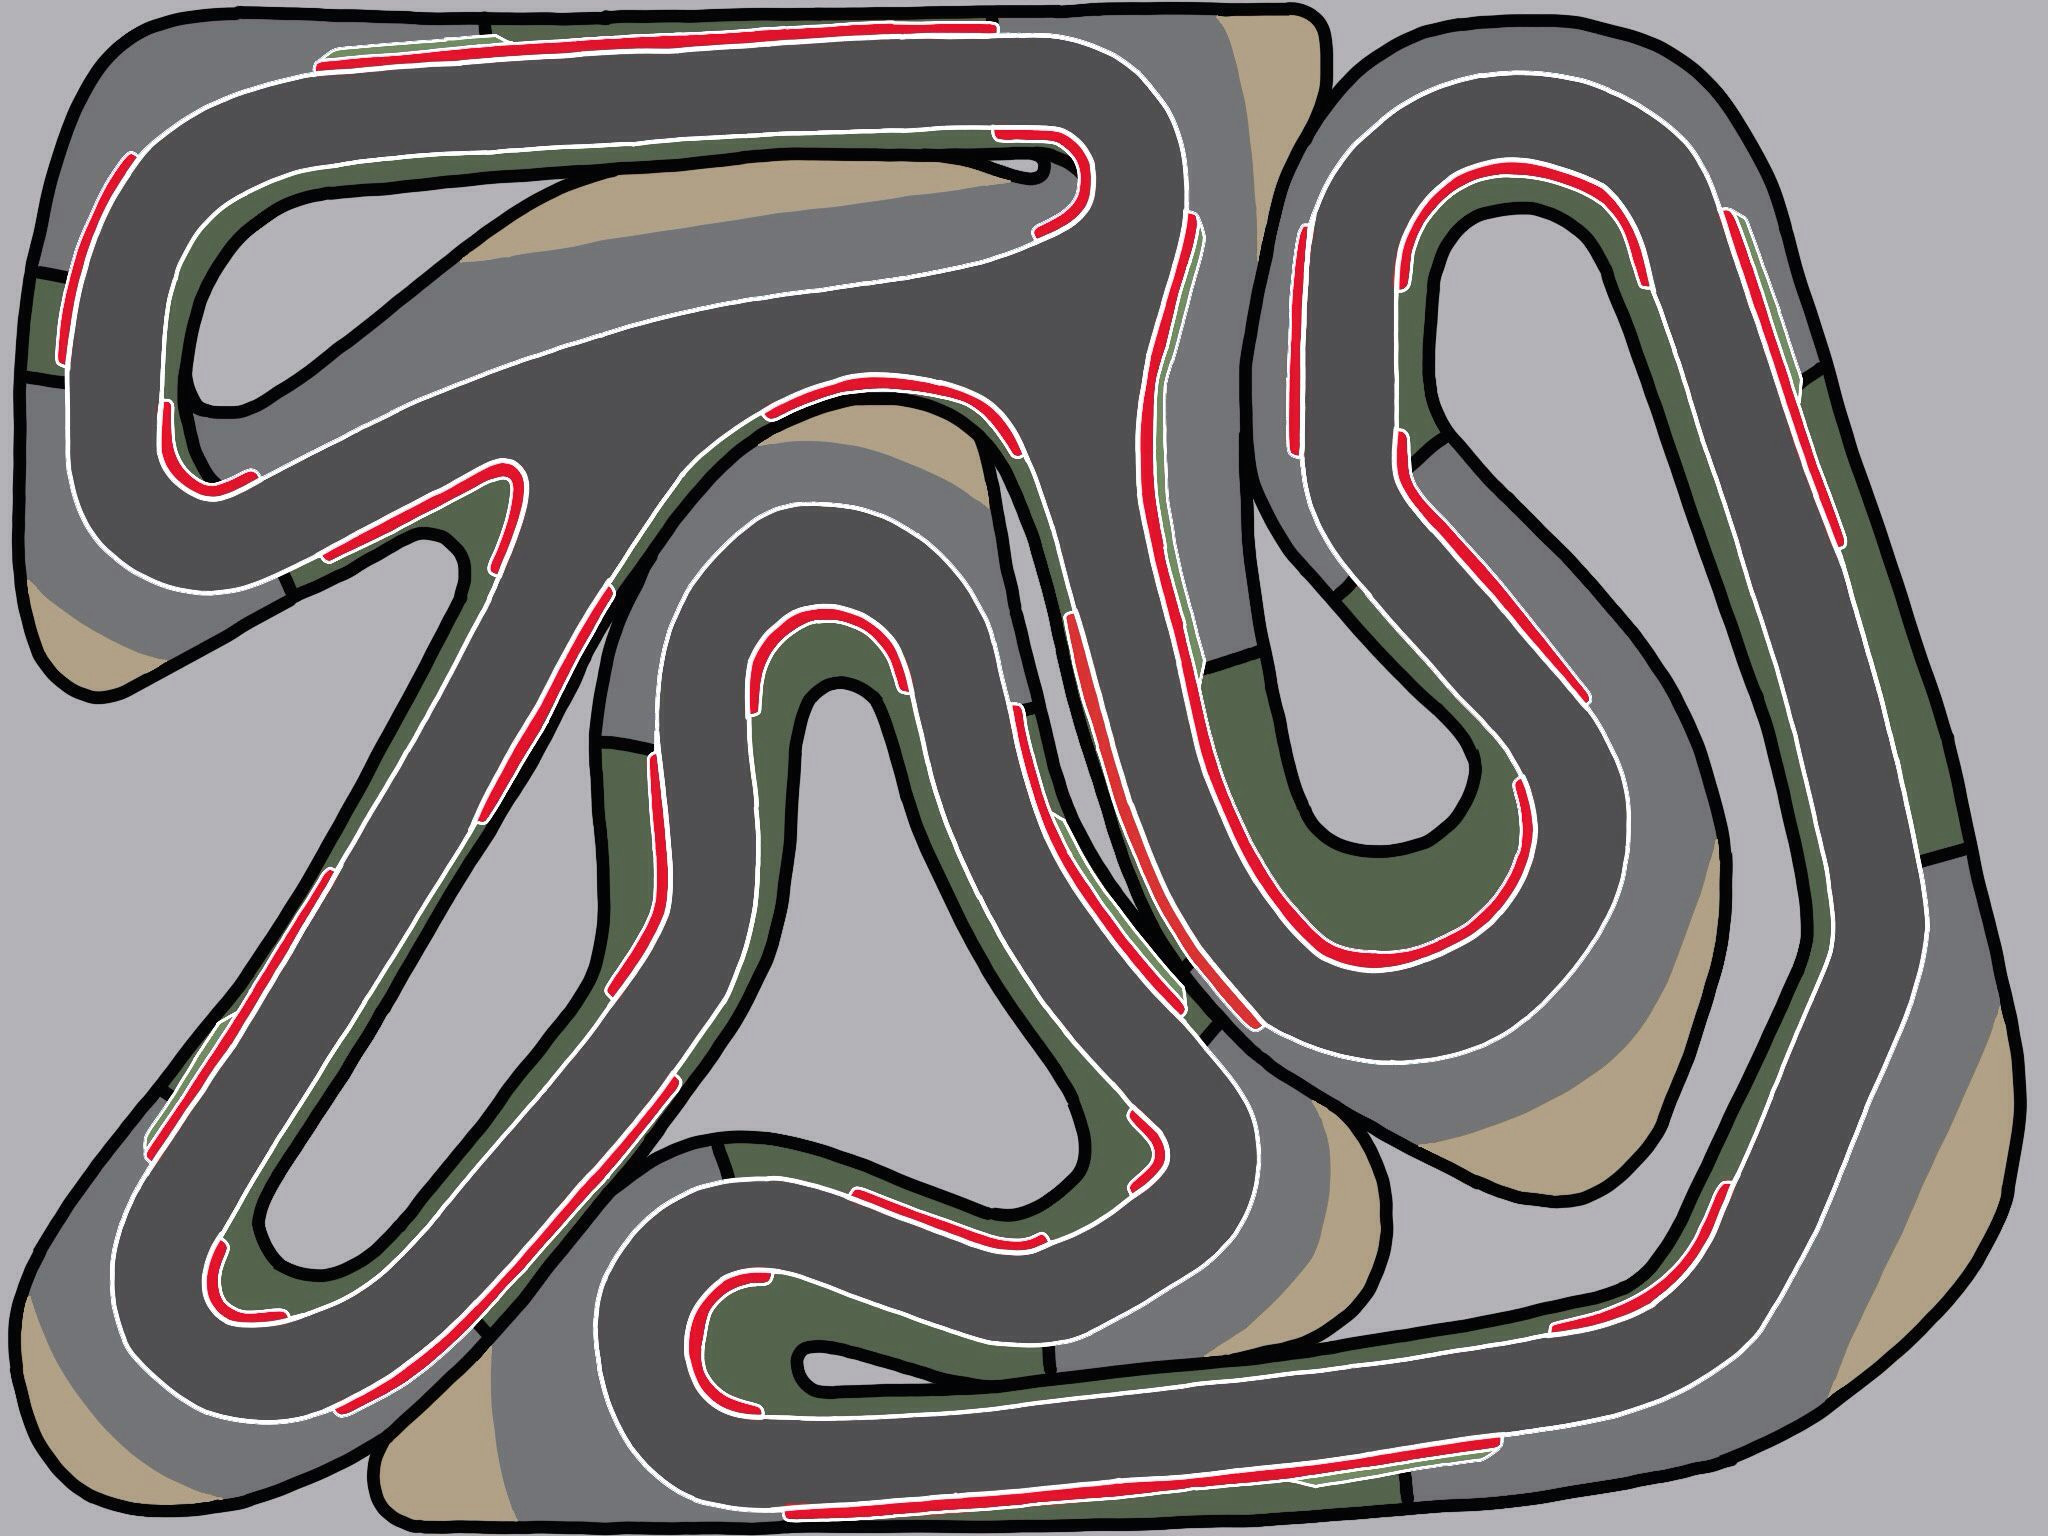 i signed up mainly to contribute to this subreddit as i ve been making race track designs all my life getting more detailed as time has passed of course